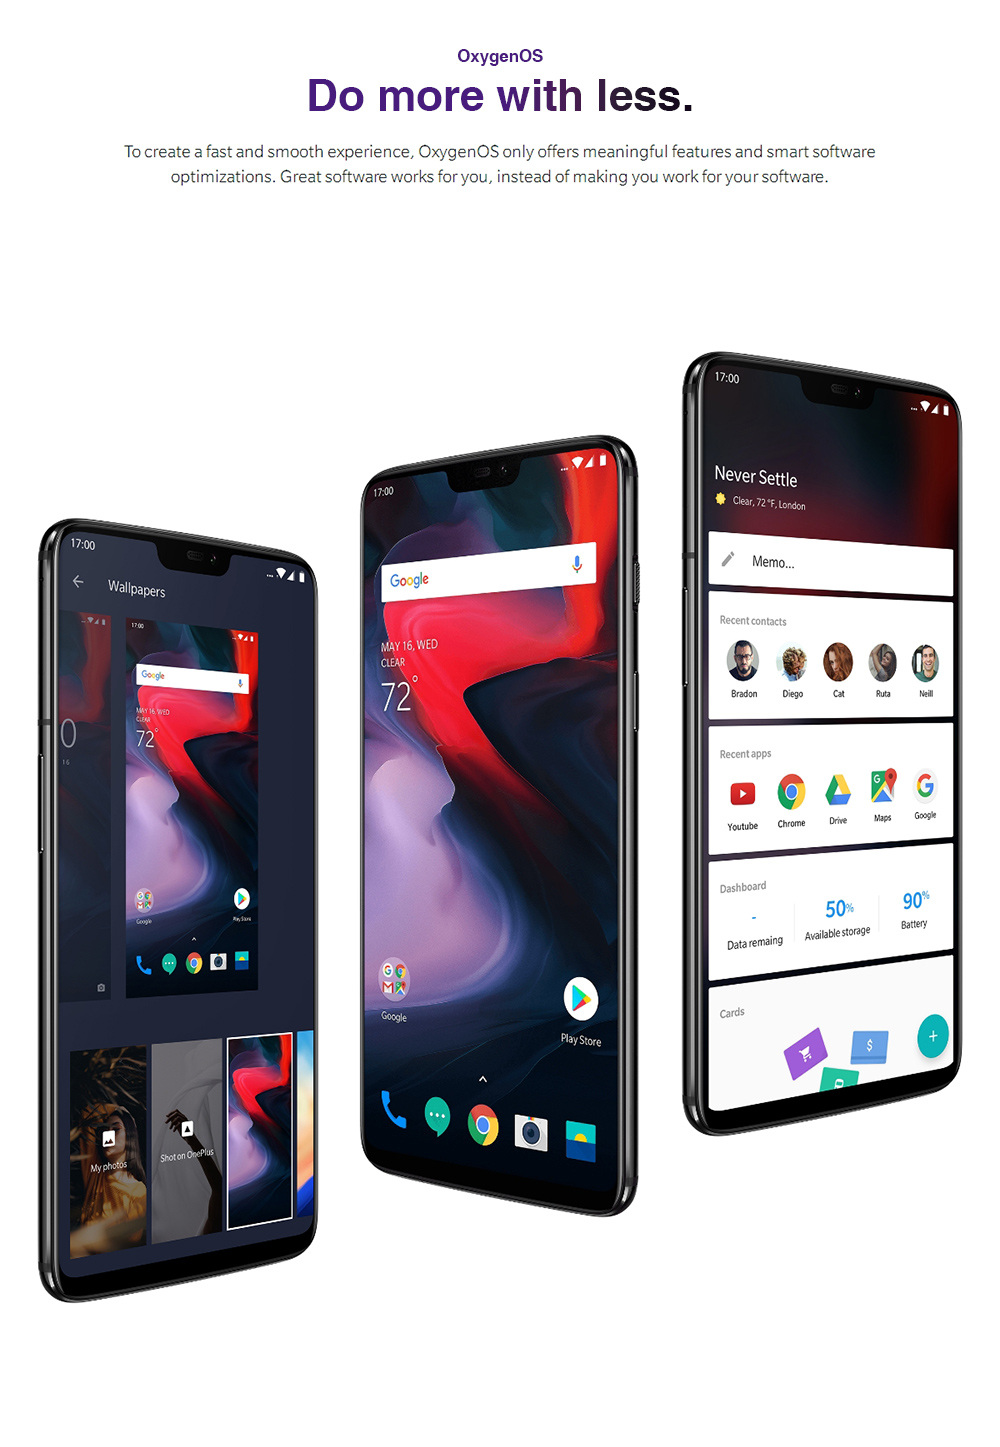 Oneplus 6 6.28 Inch Full Screen 4G Smartphone Snapdragon 845 Soc 8GB 128GB 20.0MP+16.0MP Dual Rear Cameras Android 8.1 NFC Dash Charge Type-C - Silk White